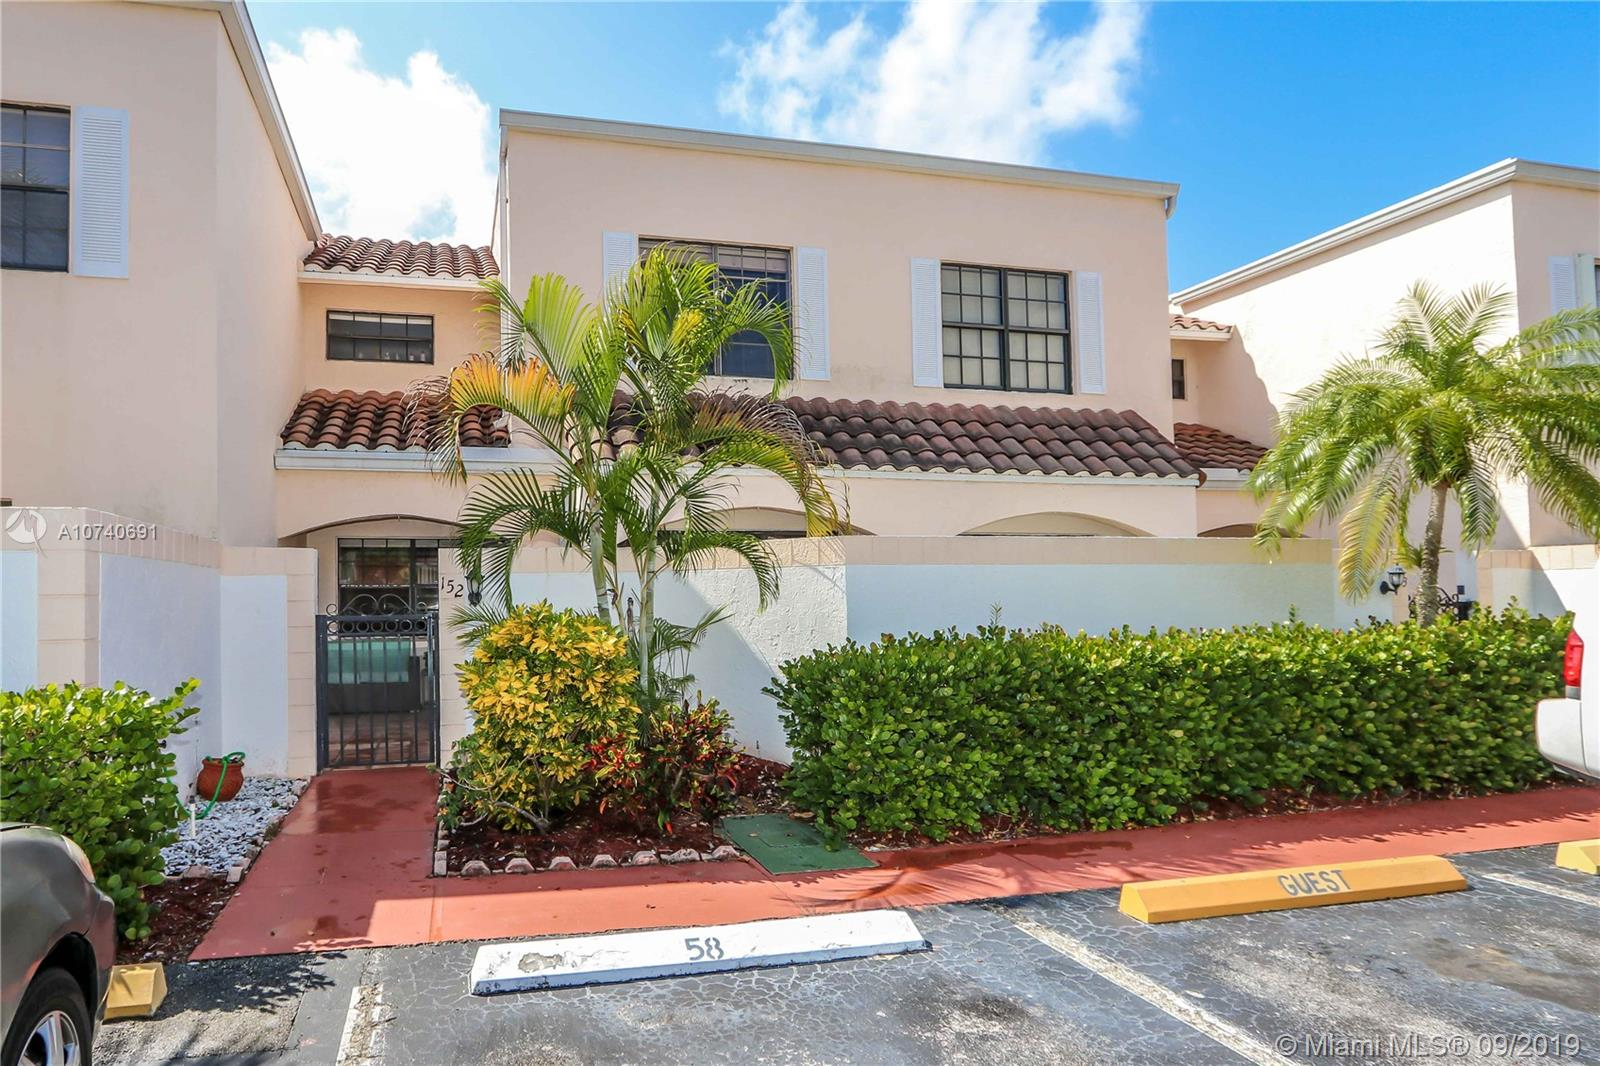 21216  Harbor Way #152-15 For Sale A10740691, FL